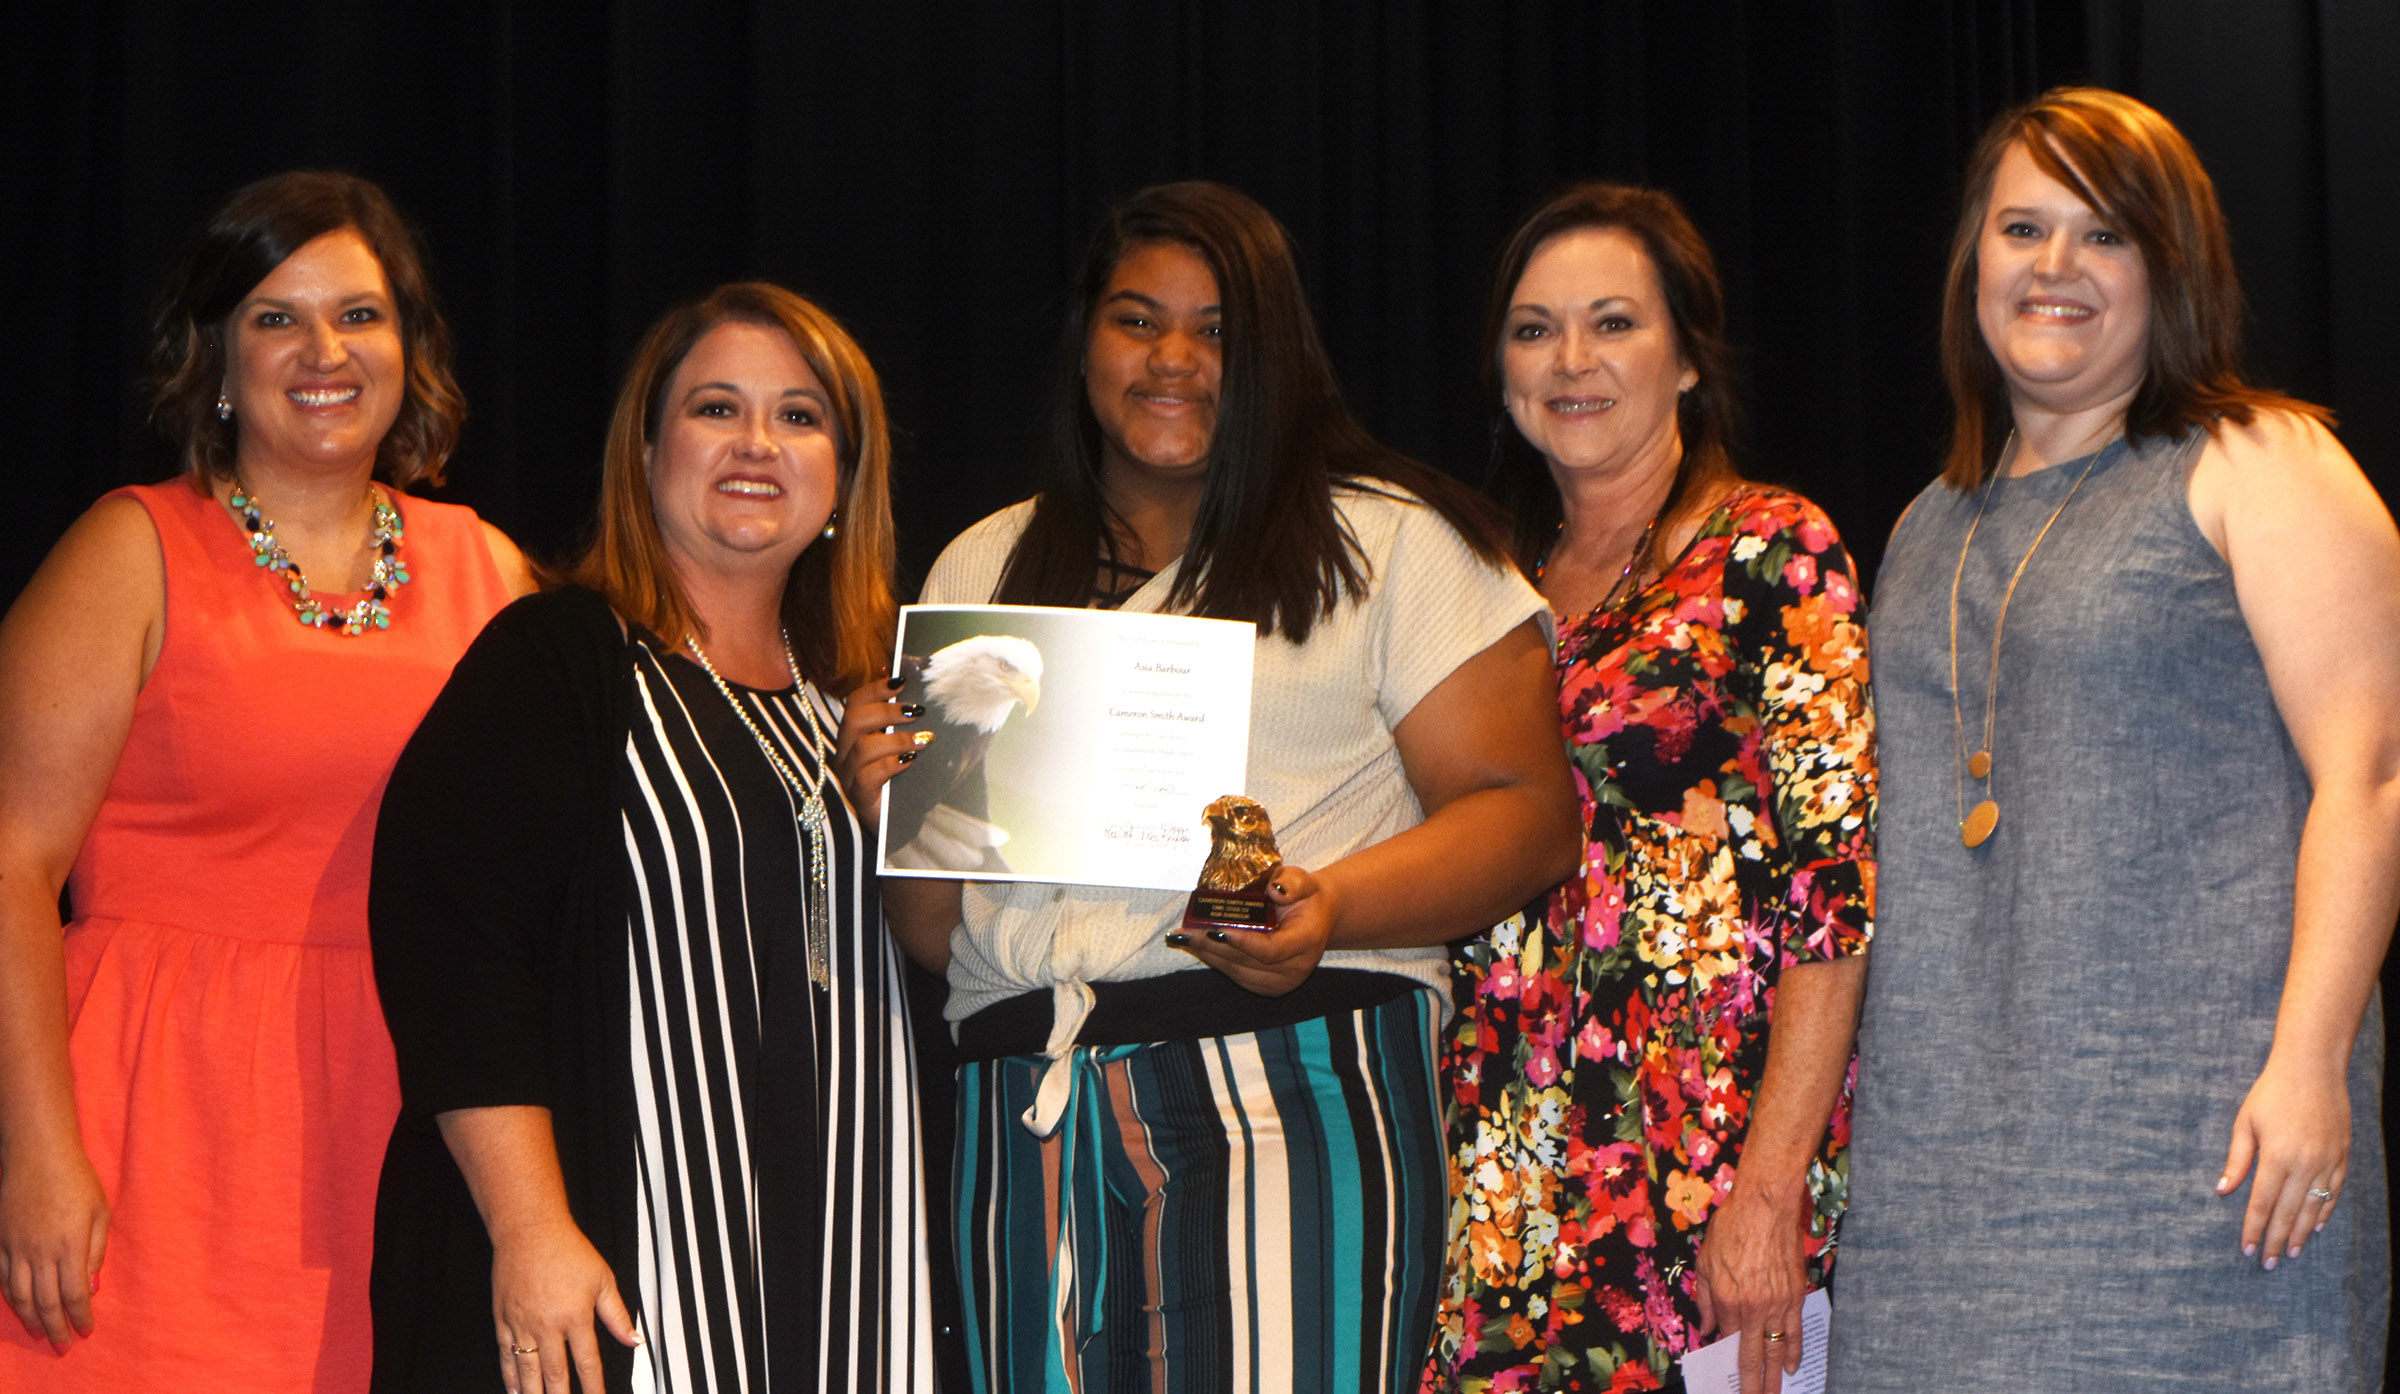 Asia Barbour is honored with the Cameron Smith award. She is pictured with her teachers. From left are Robbilyn Speer, Amy Knifley, Barbour, Melisa Morris and Paige Cook.